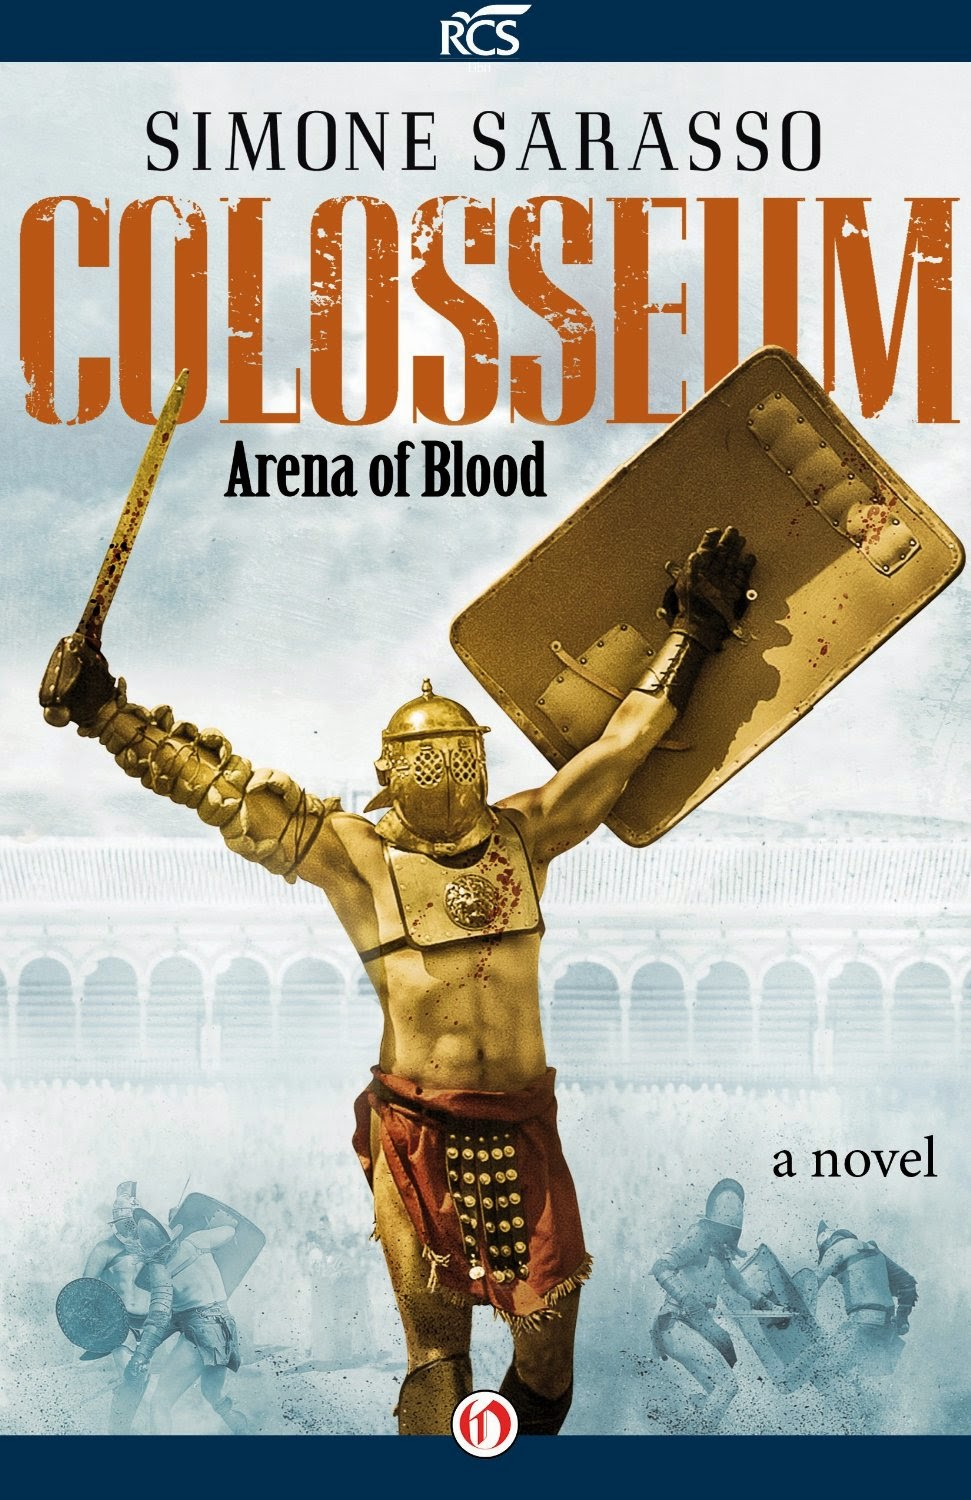 https://itunes.apple.com/us/book/colosseum/id828765214?mt=11